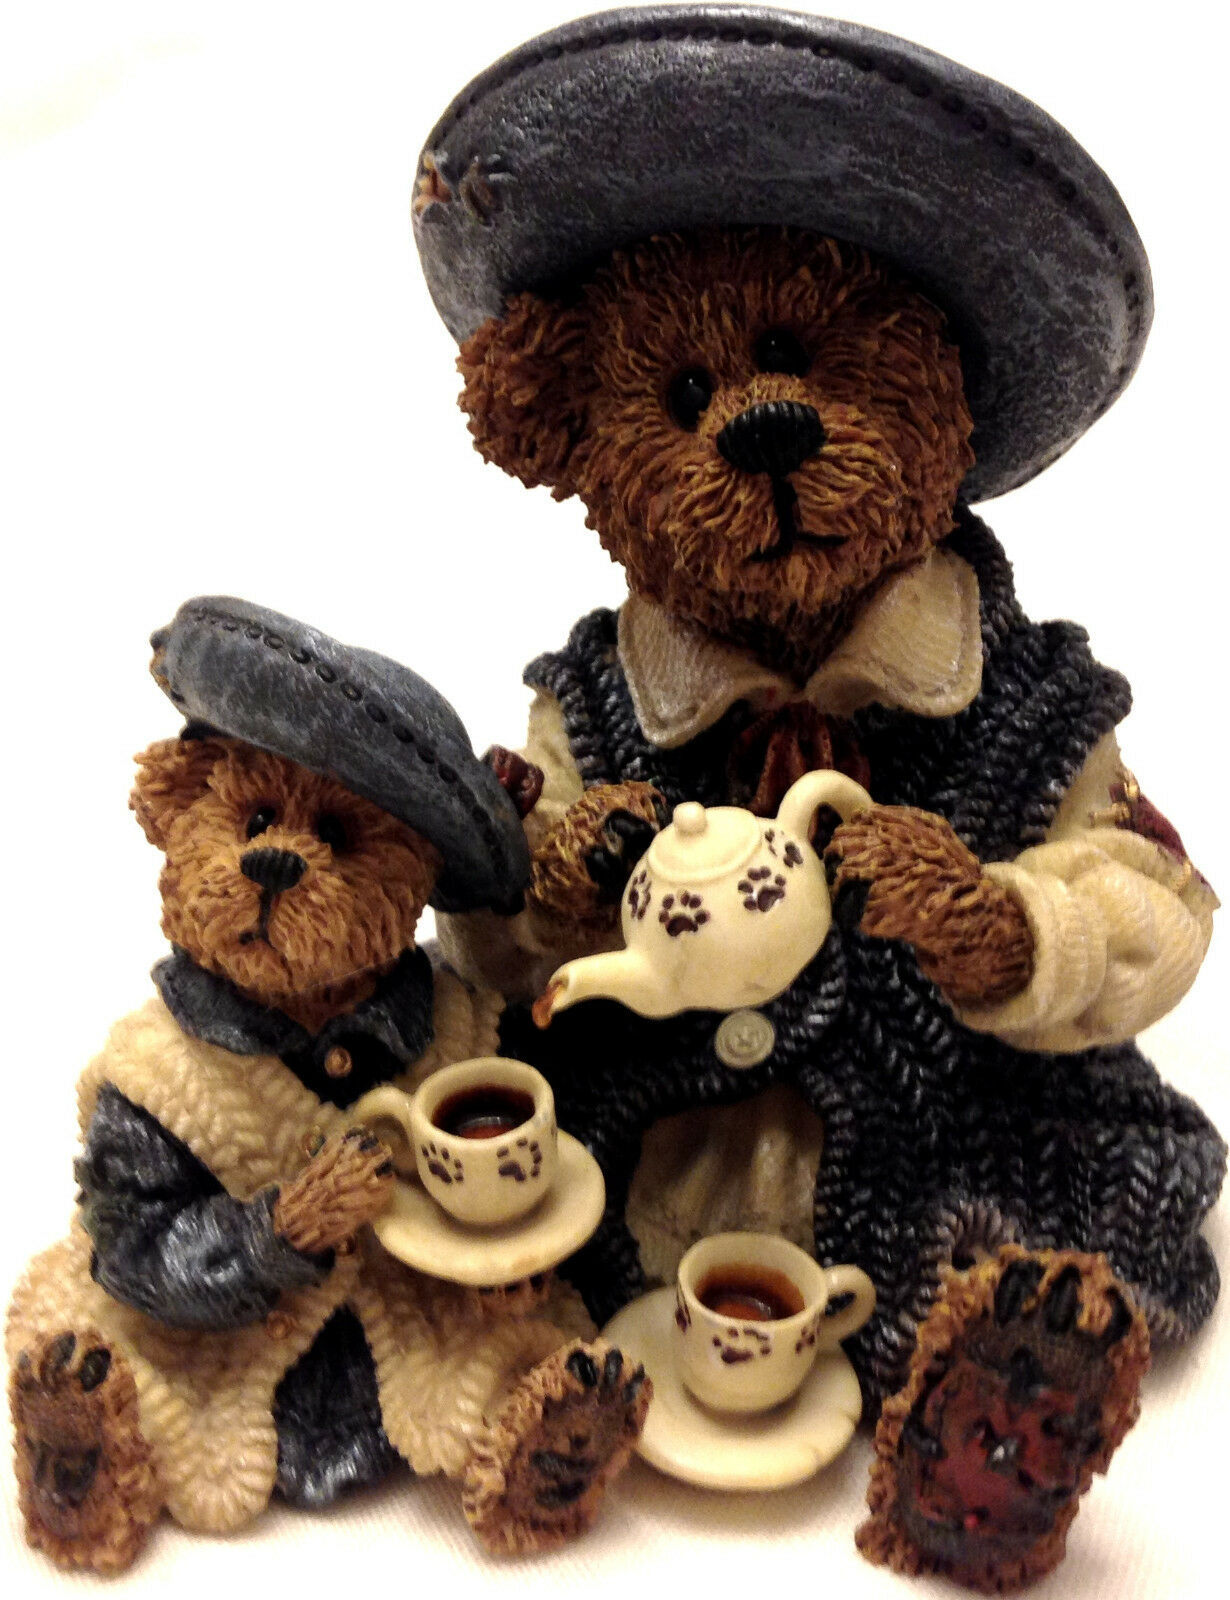 Primary image for Boyds Bears, Catherine Caitlin Fine Cup of Tea figurine in box 02000-21 Pristine